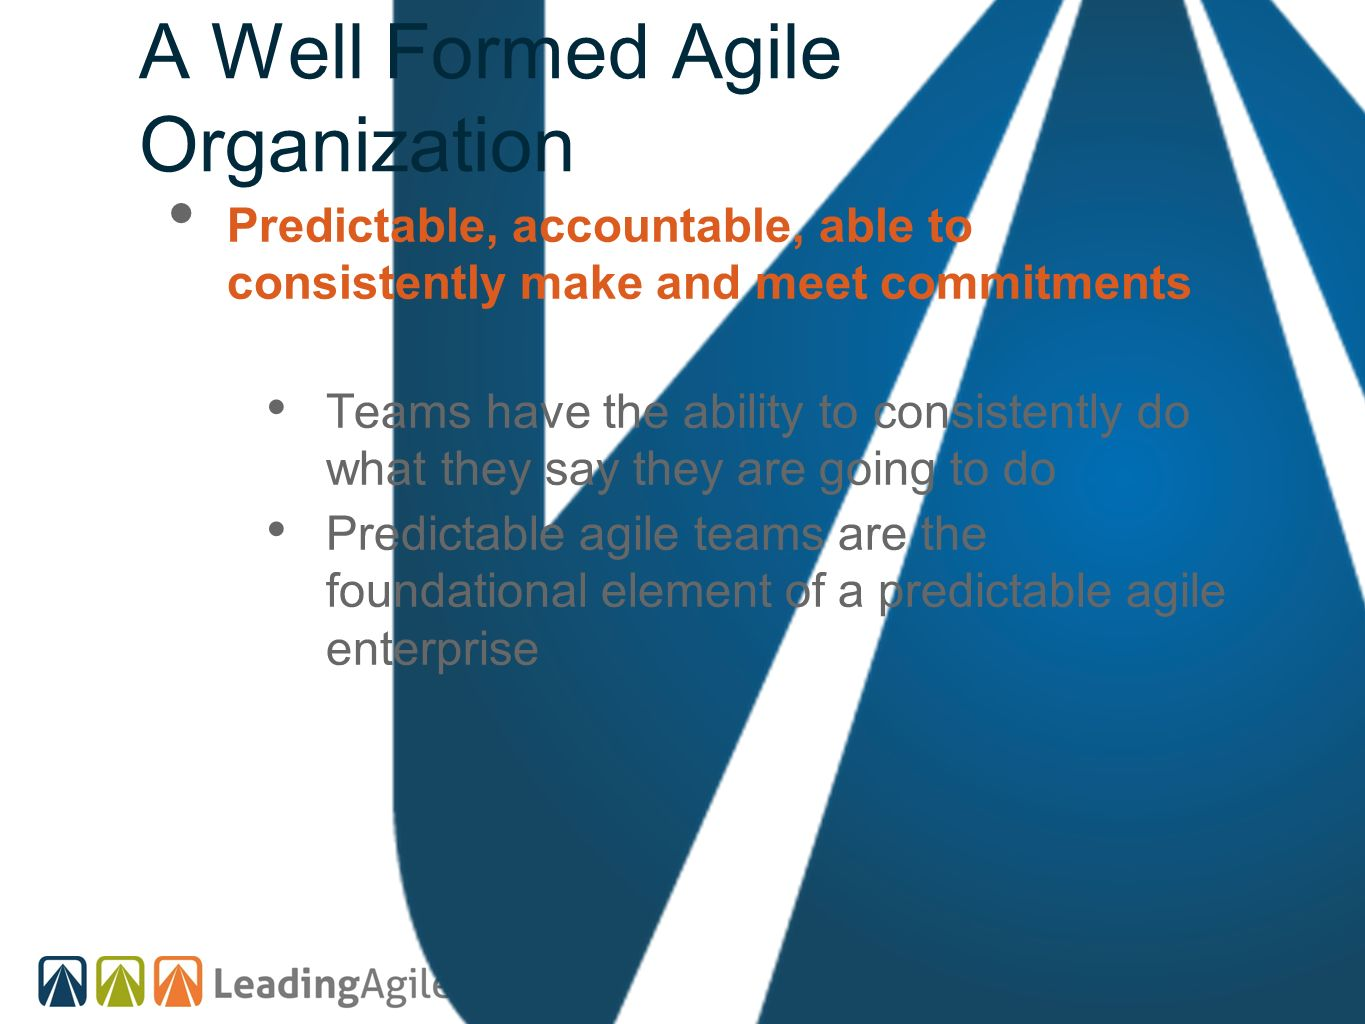 A Well Formed Agile Organization Predictable, accountable, able to consistently make and meet commitments Teams have the ability to consistently do wh